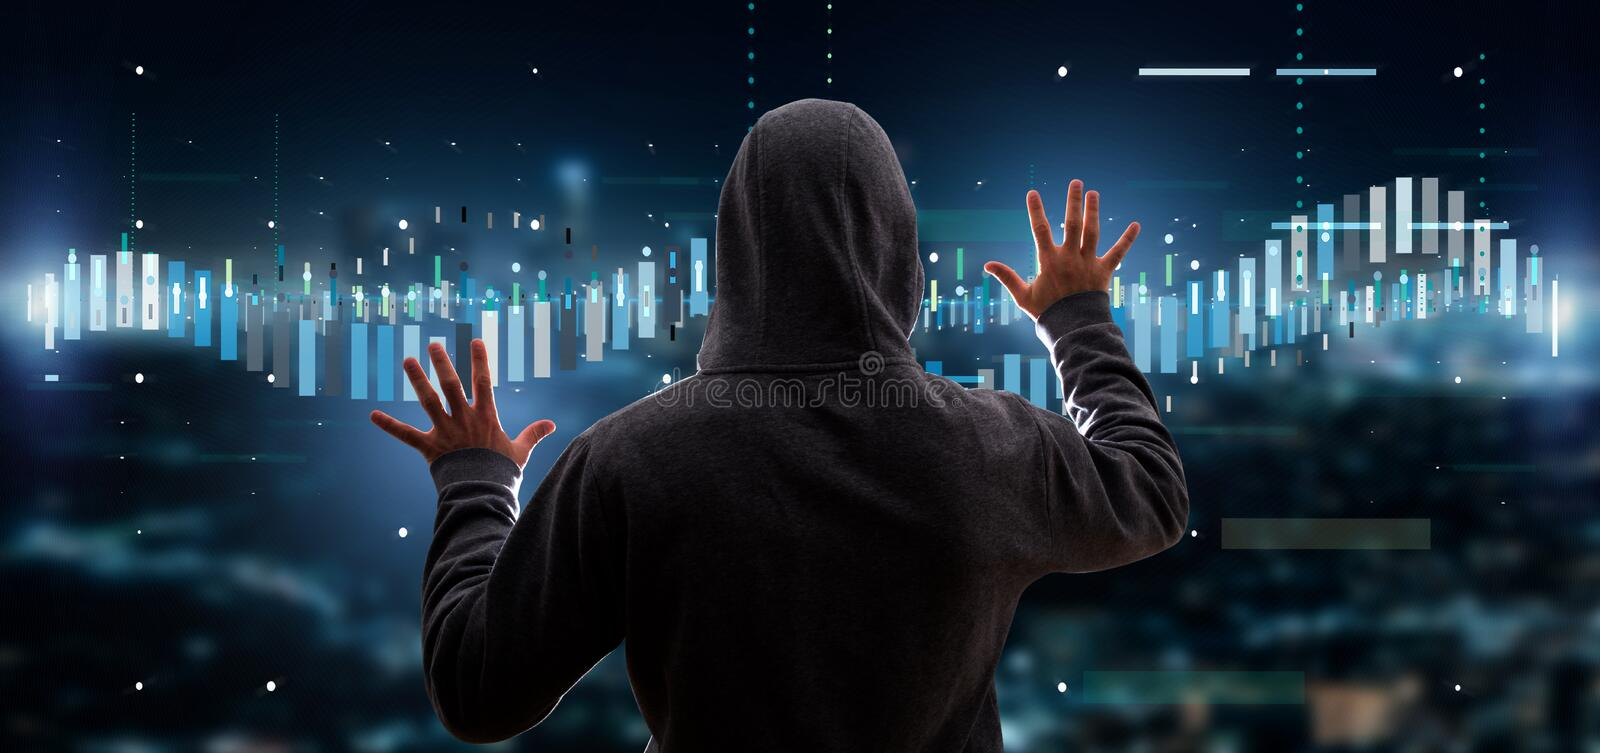 Hacker activating Business stock exchange trading data information. View of a Hacker activating Business stock exchange trading data information stock images